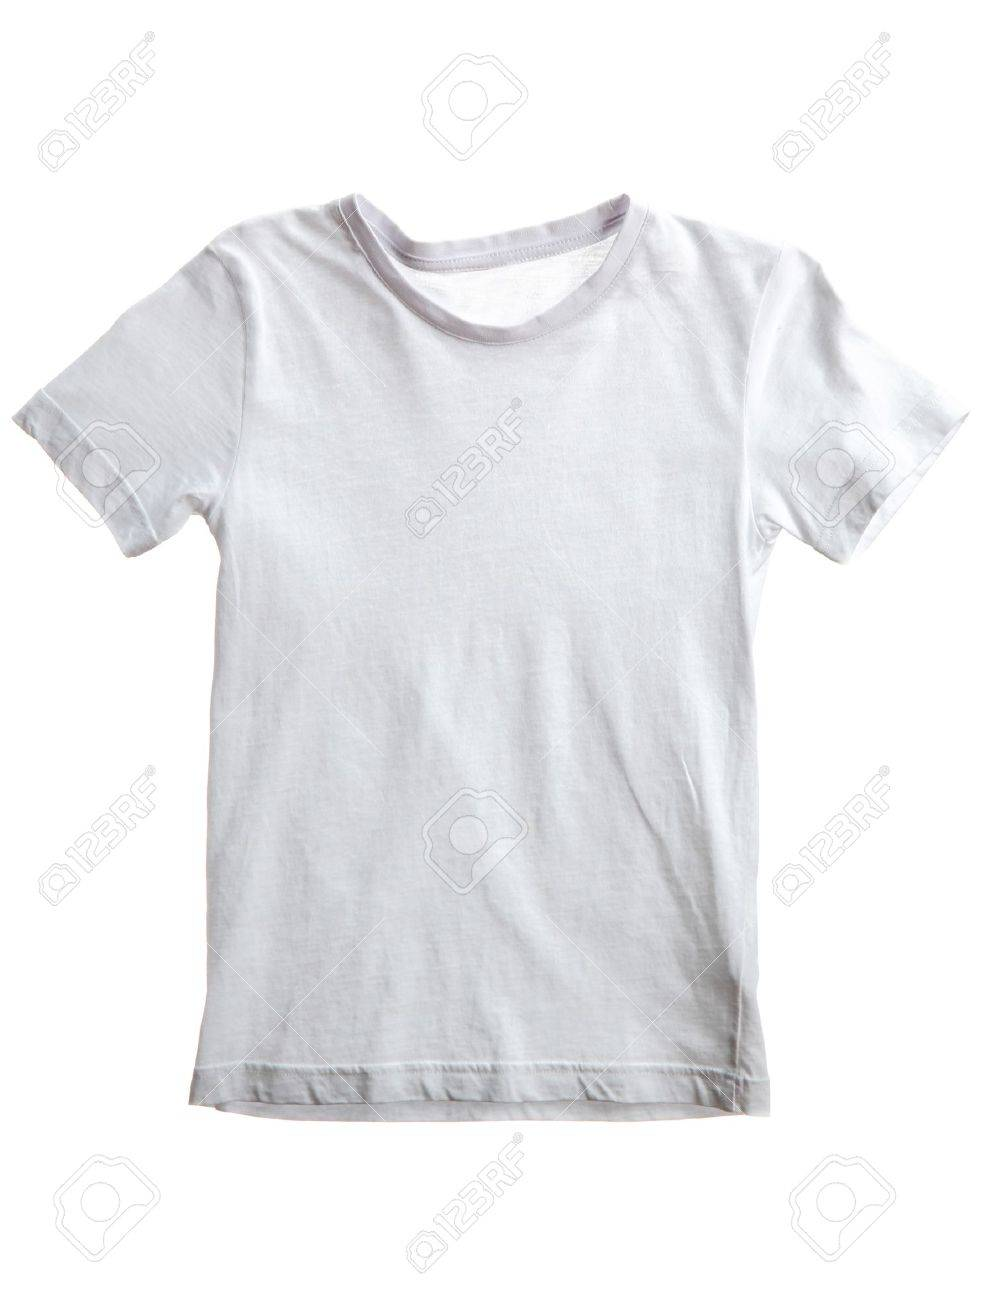 kid white t-shirt isolated on white Stock Photo - 15519498